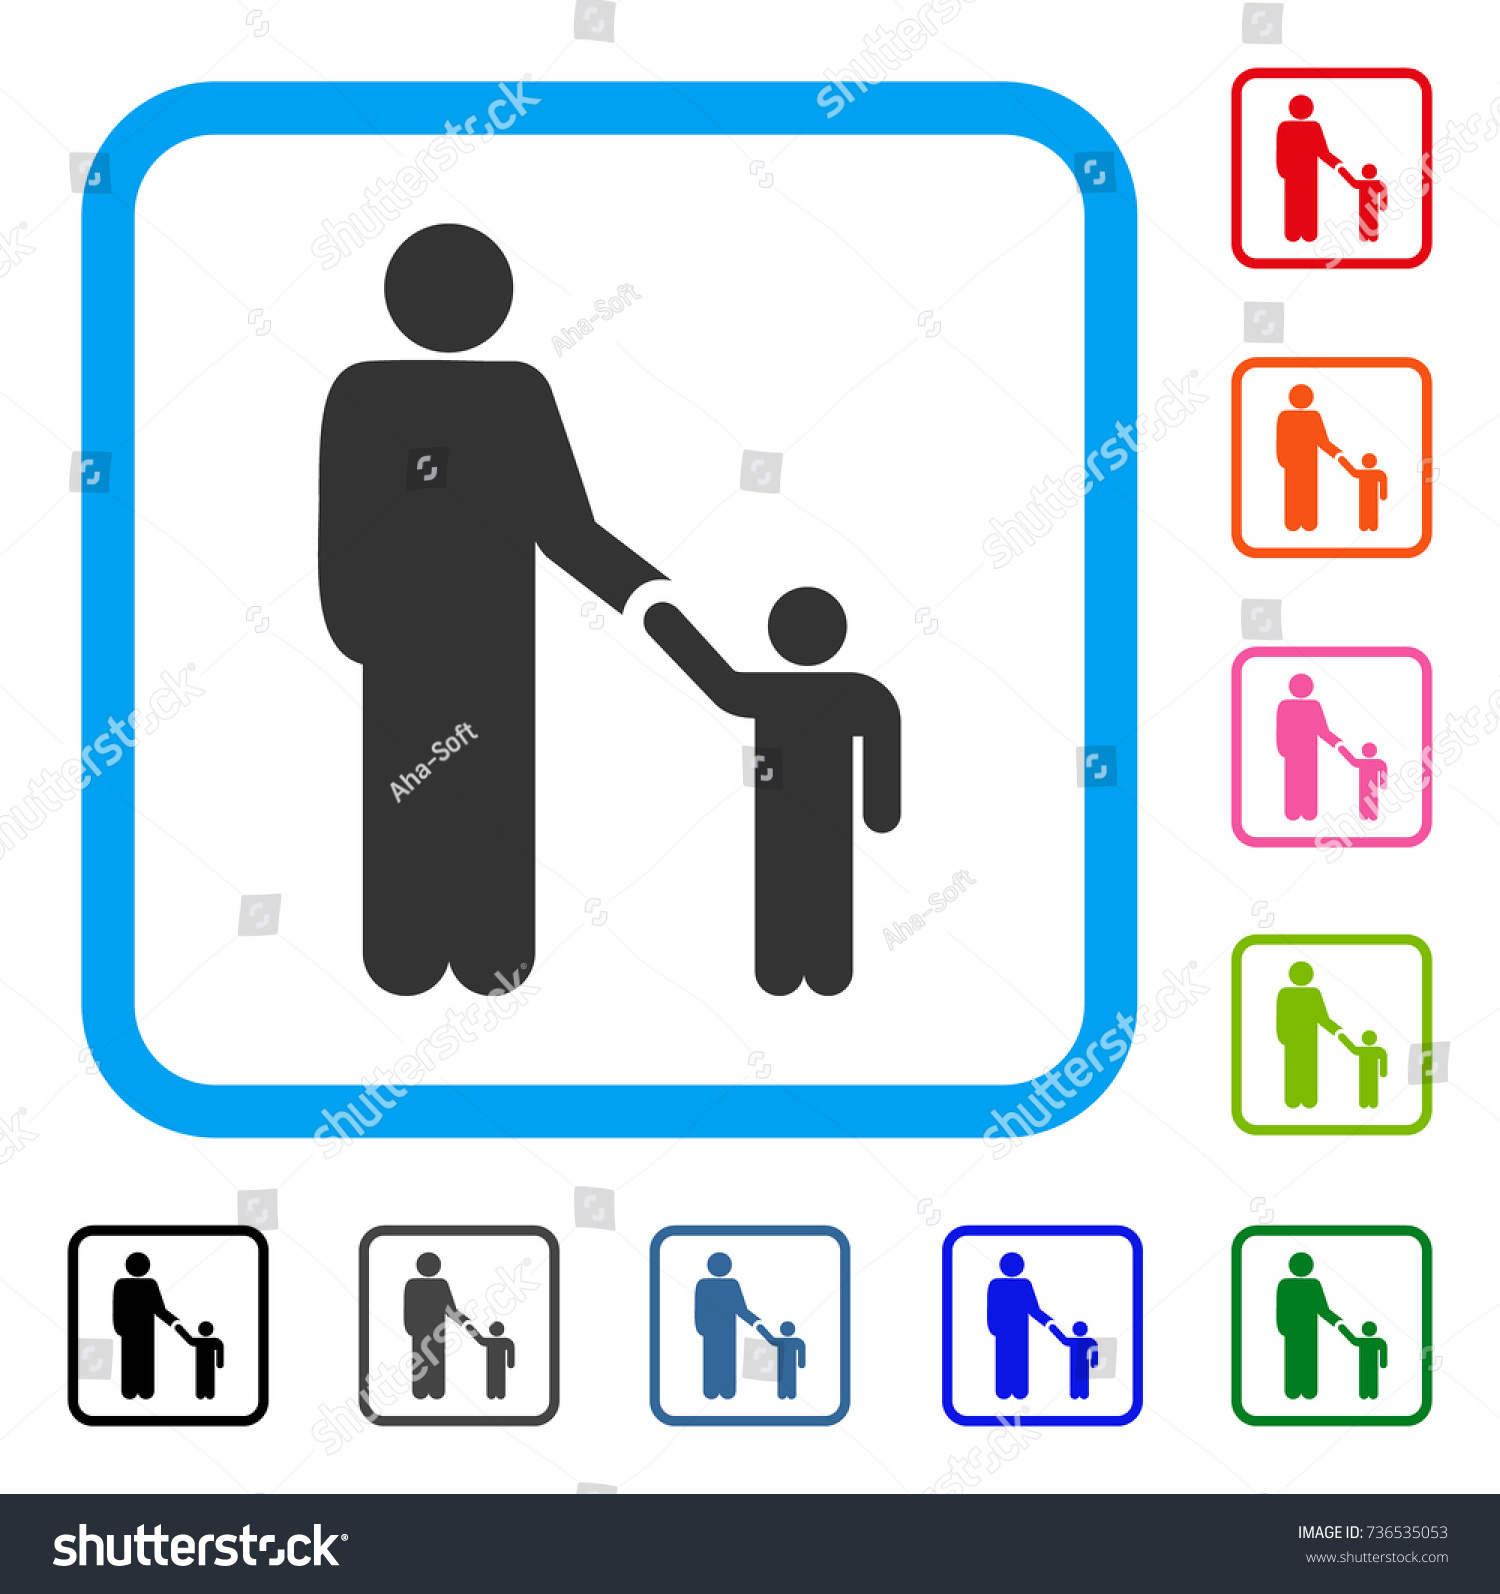 Father Son Icon Flat Gray Pictogram Stock Vector Royalty Free